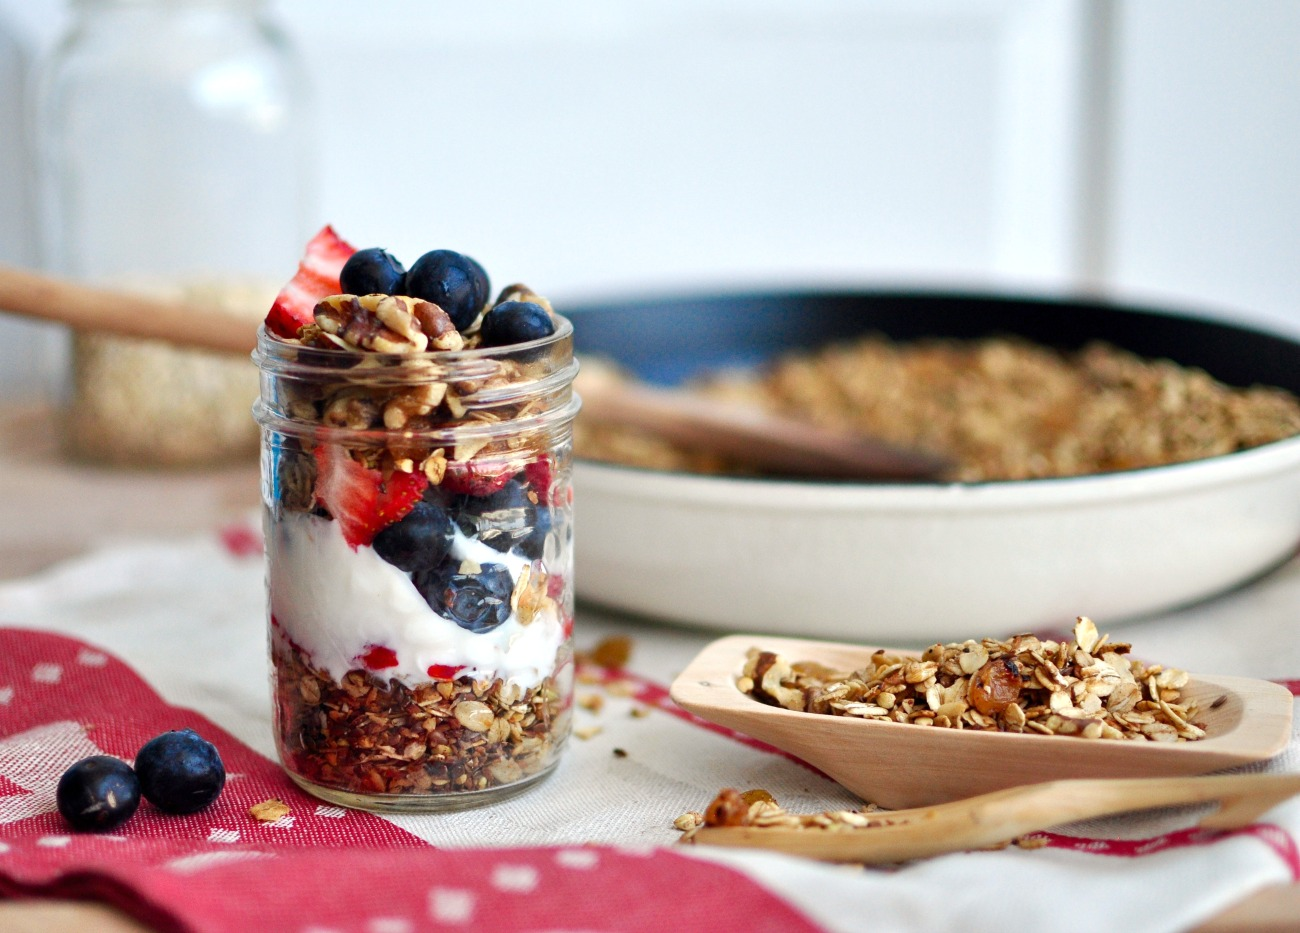 10 Minute Muesli Recipe